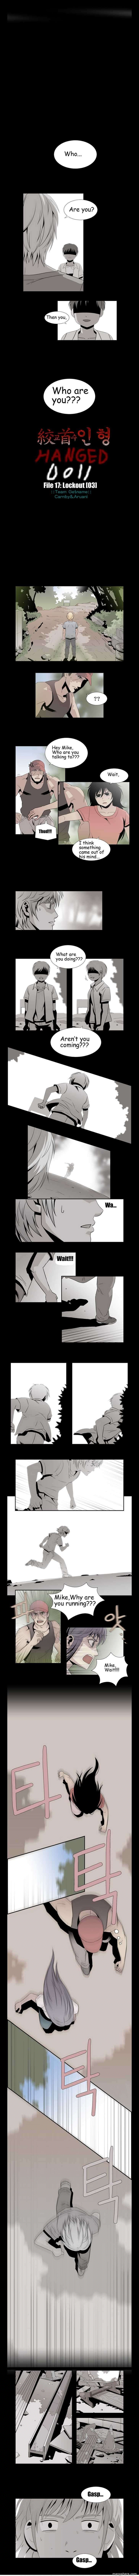 Hanged Doll 49 Page 1